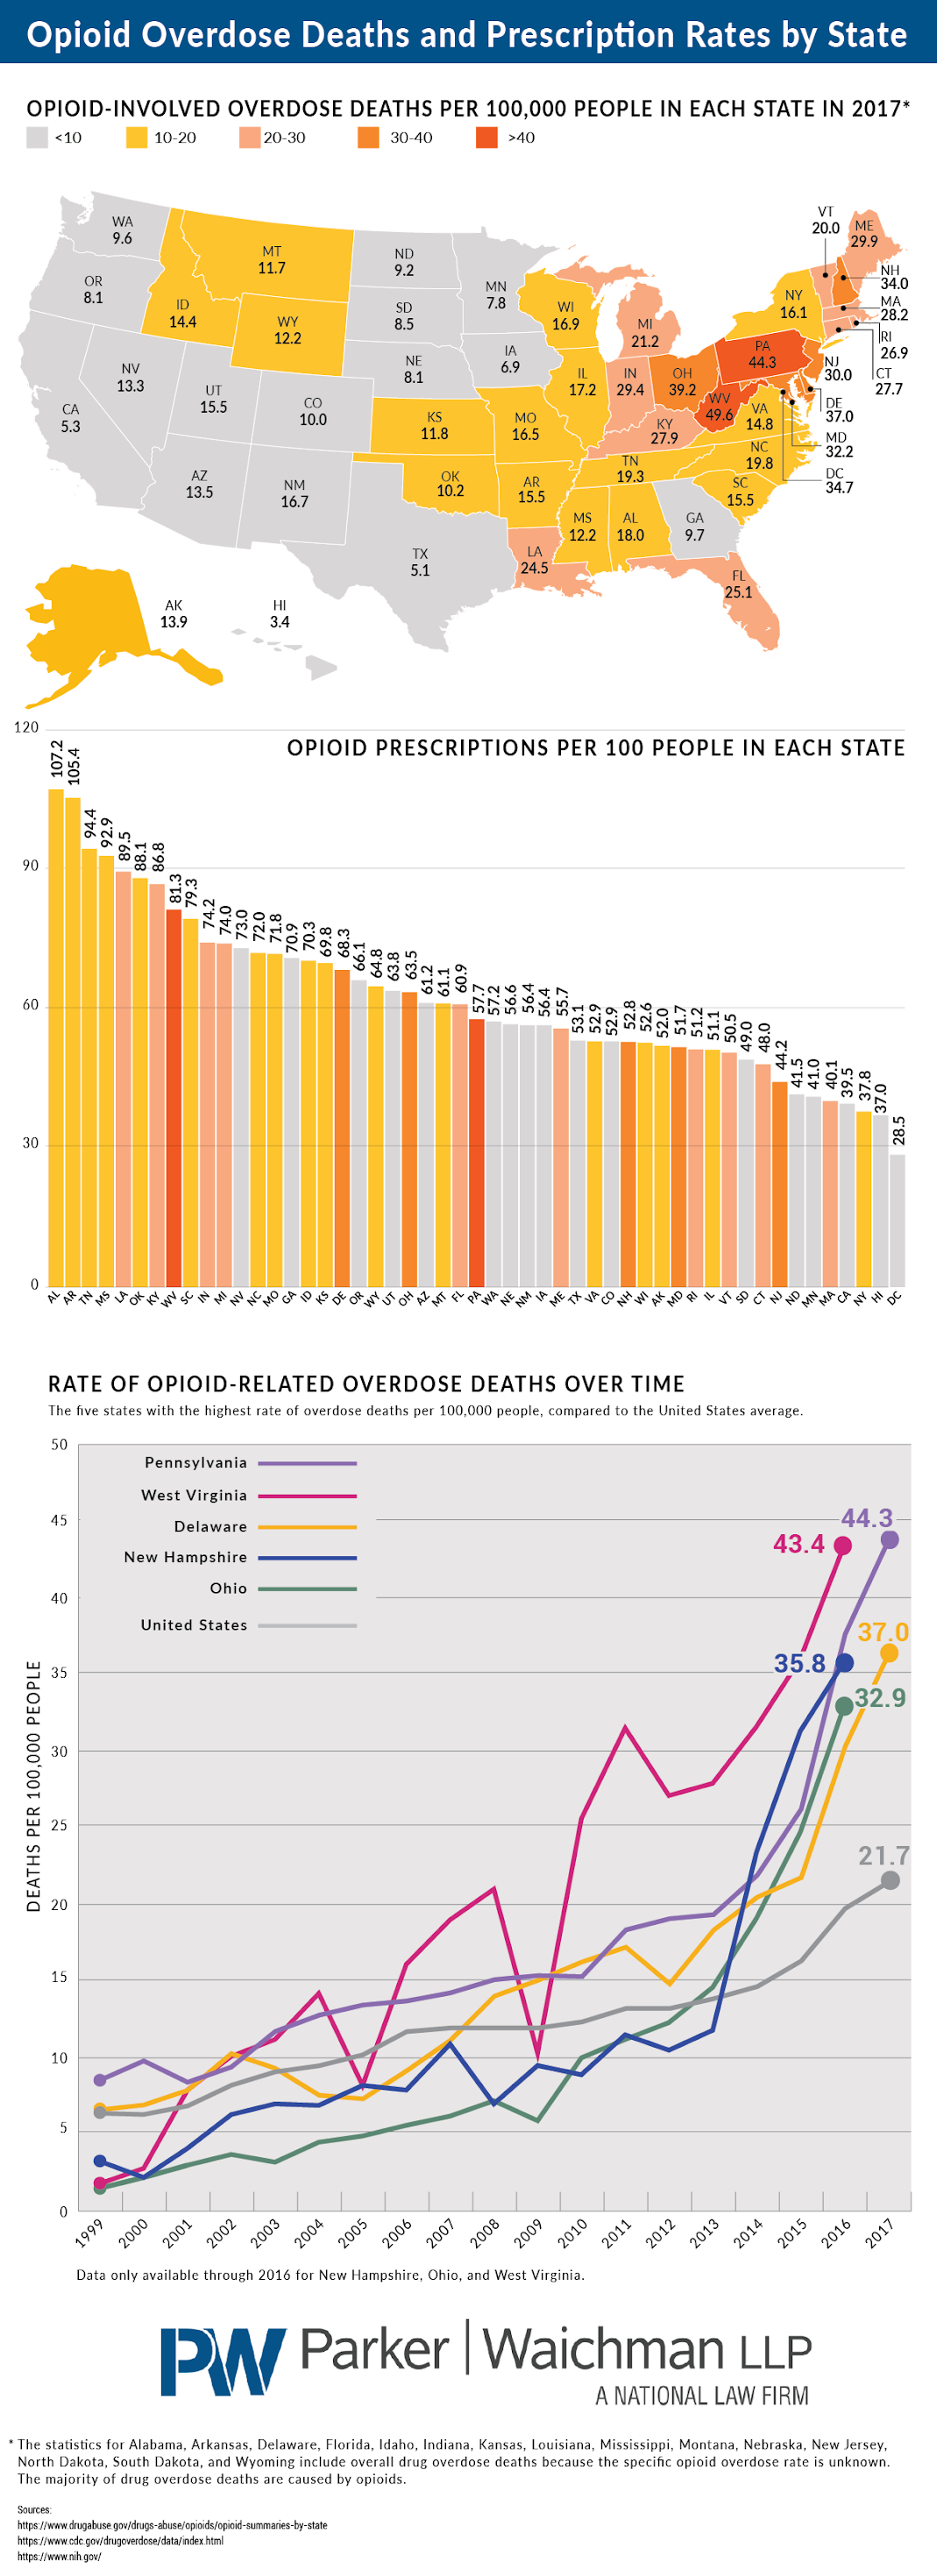 Opioid Overdose Deaths and Prescription Rates by State #Infographic